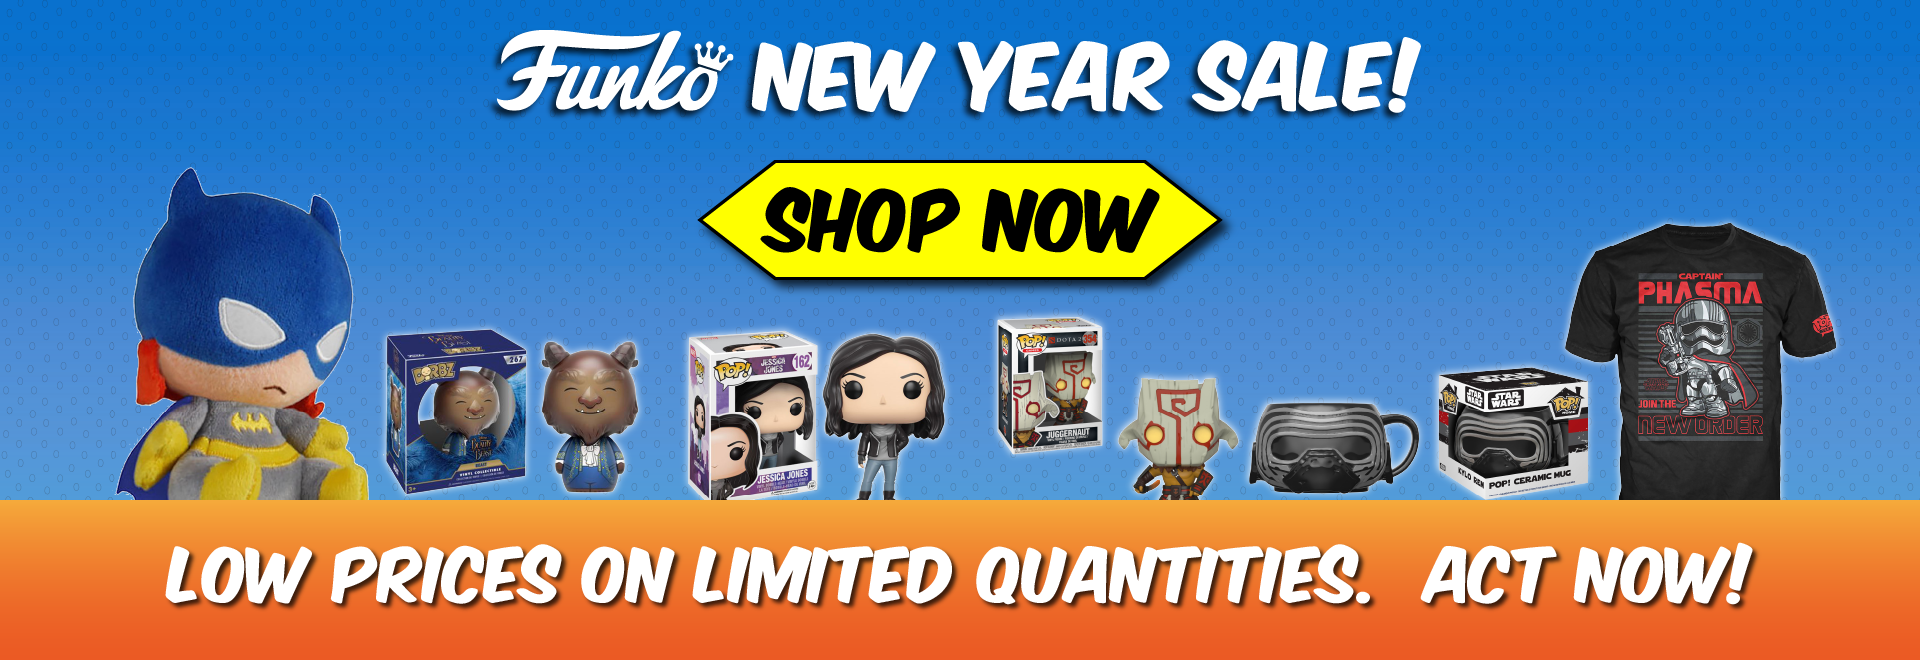 Funko New Year Sale